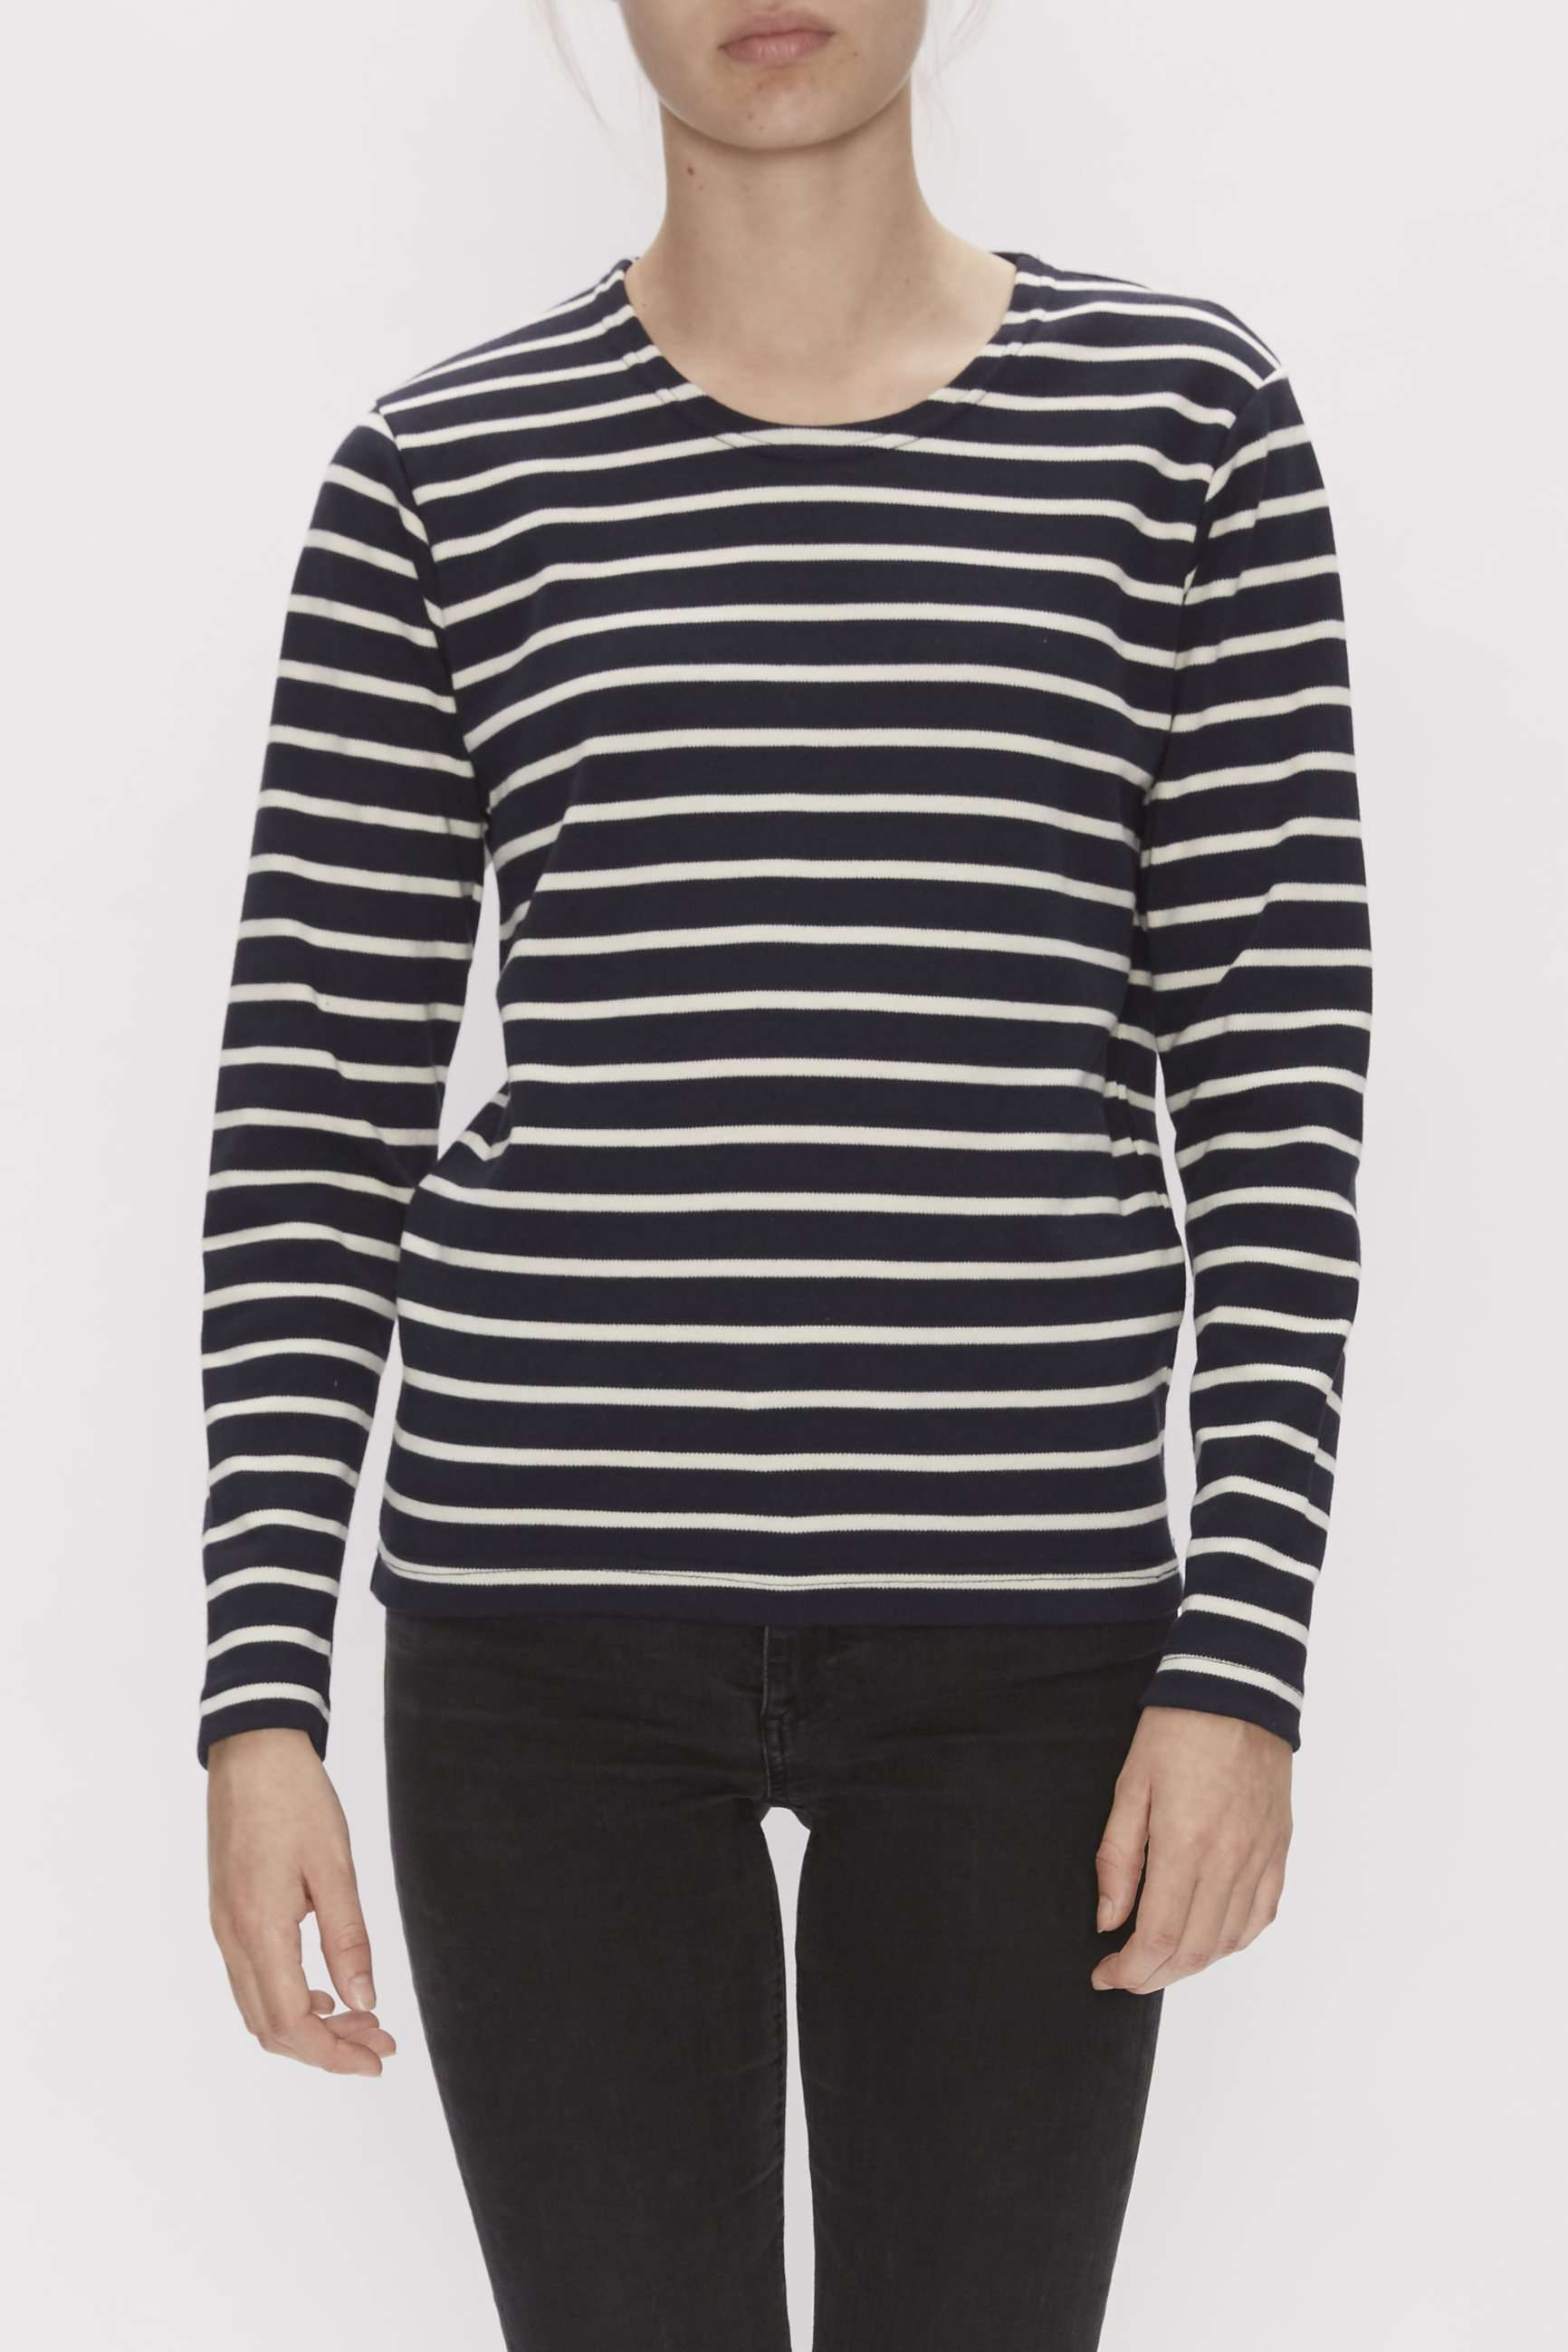 Adjø l/s sweatshirt - Navy - My Lounge - Stribet M